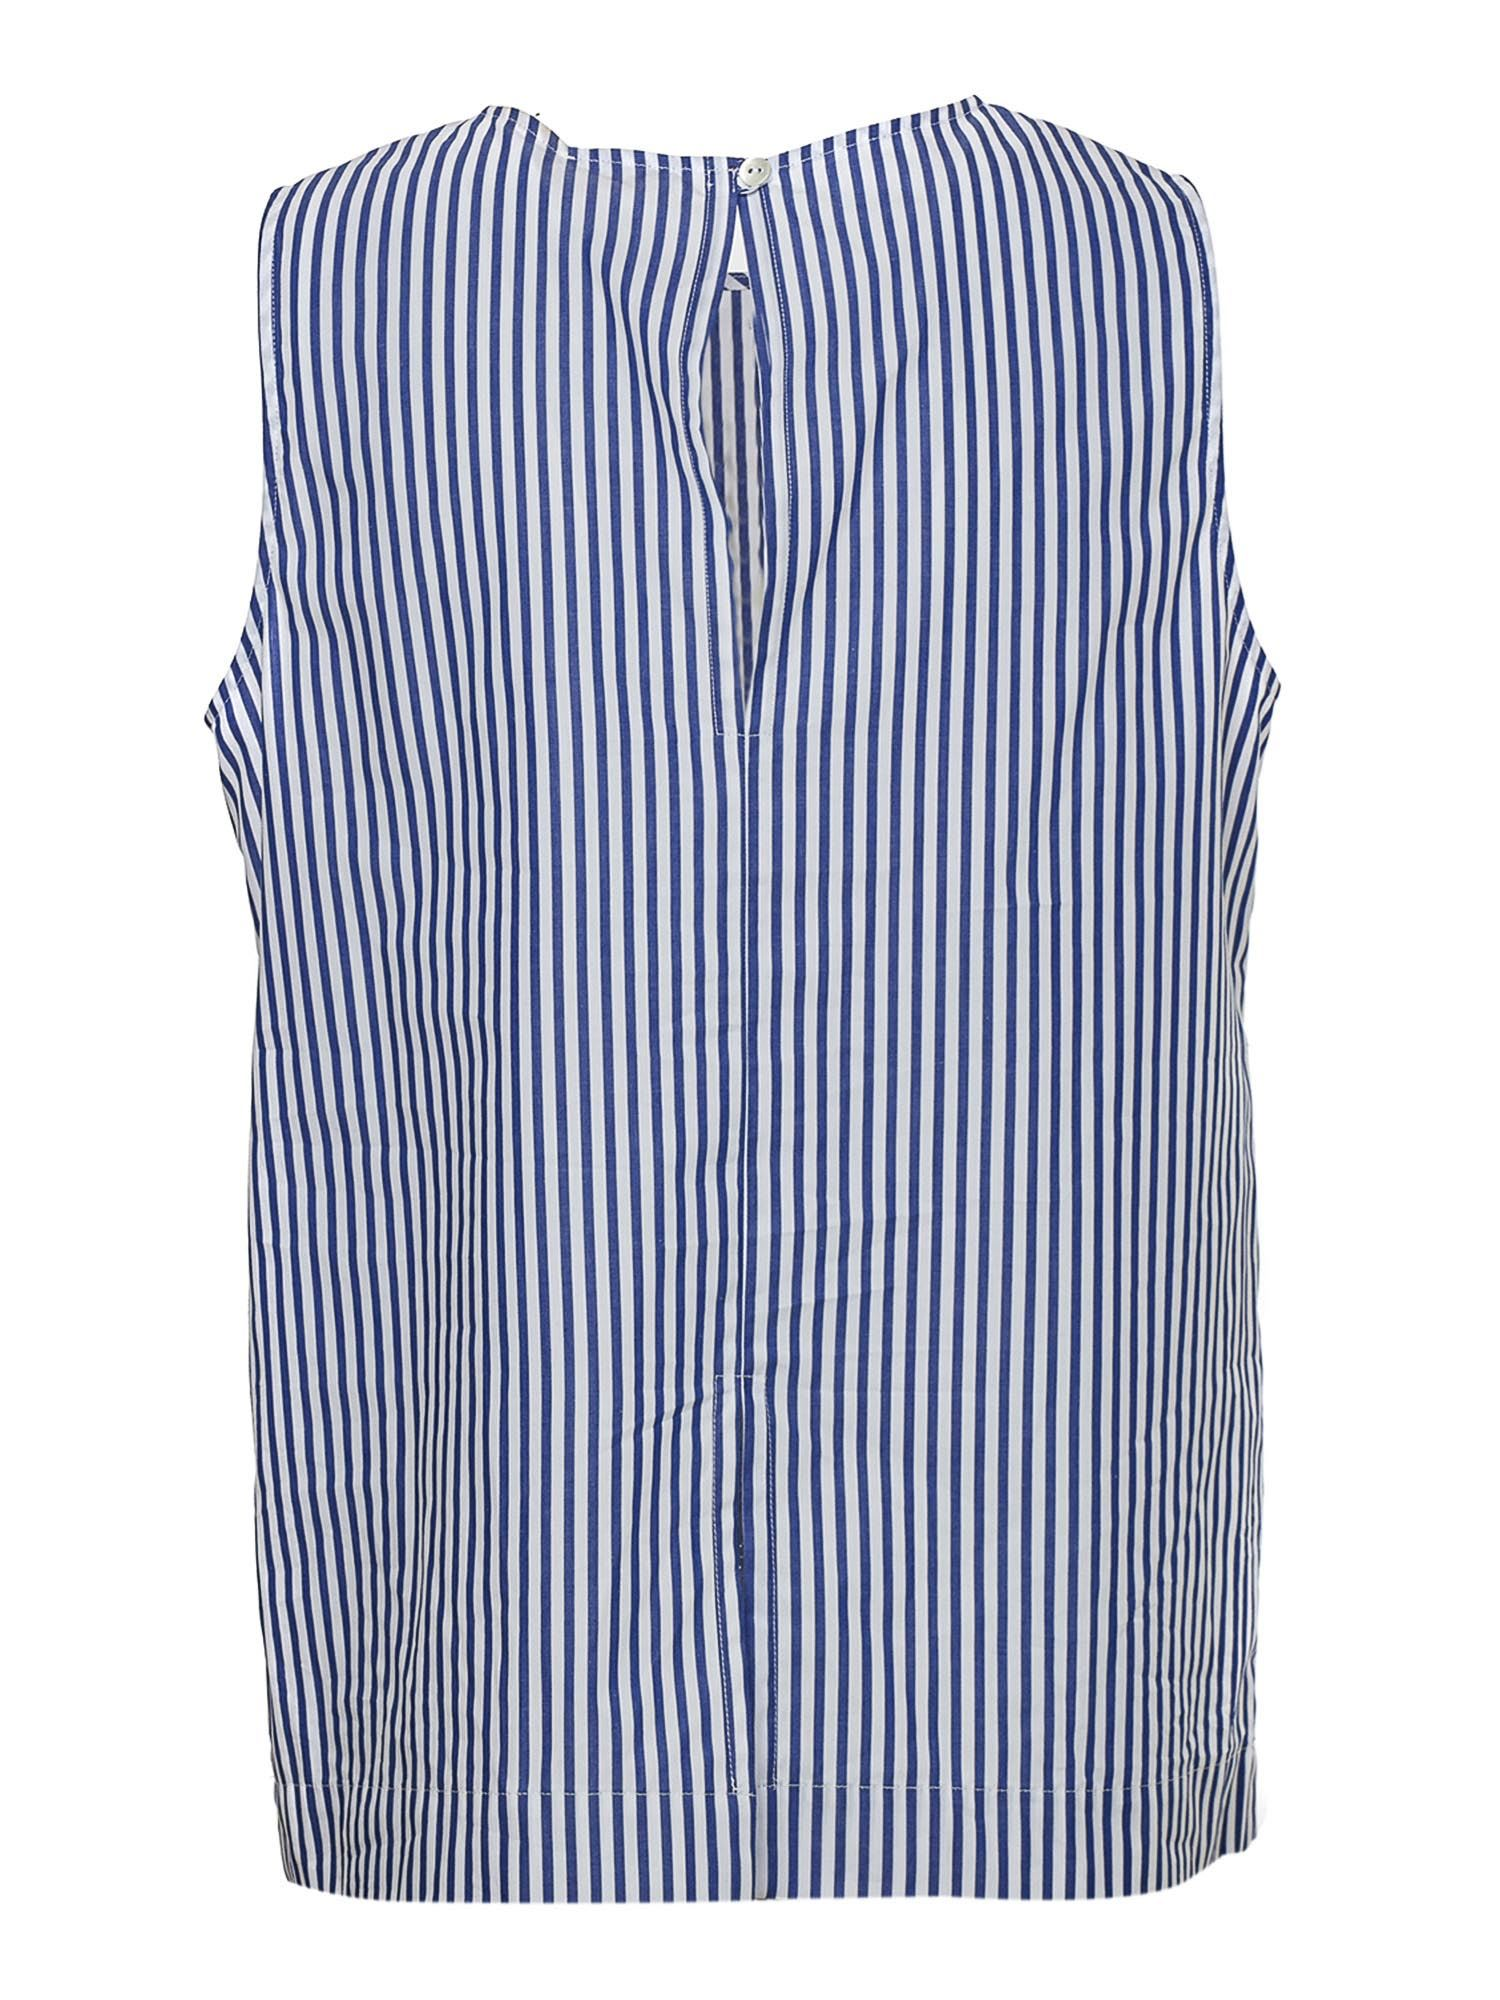 P.A.R.O.S.H. Cottons STRIPED COTTON TOP IN BLUE